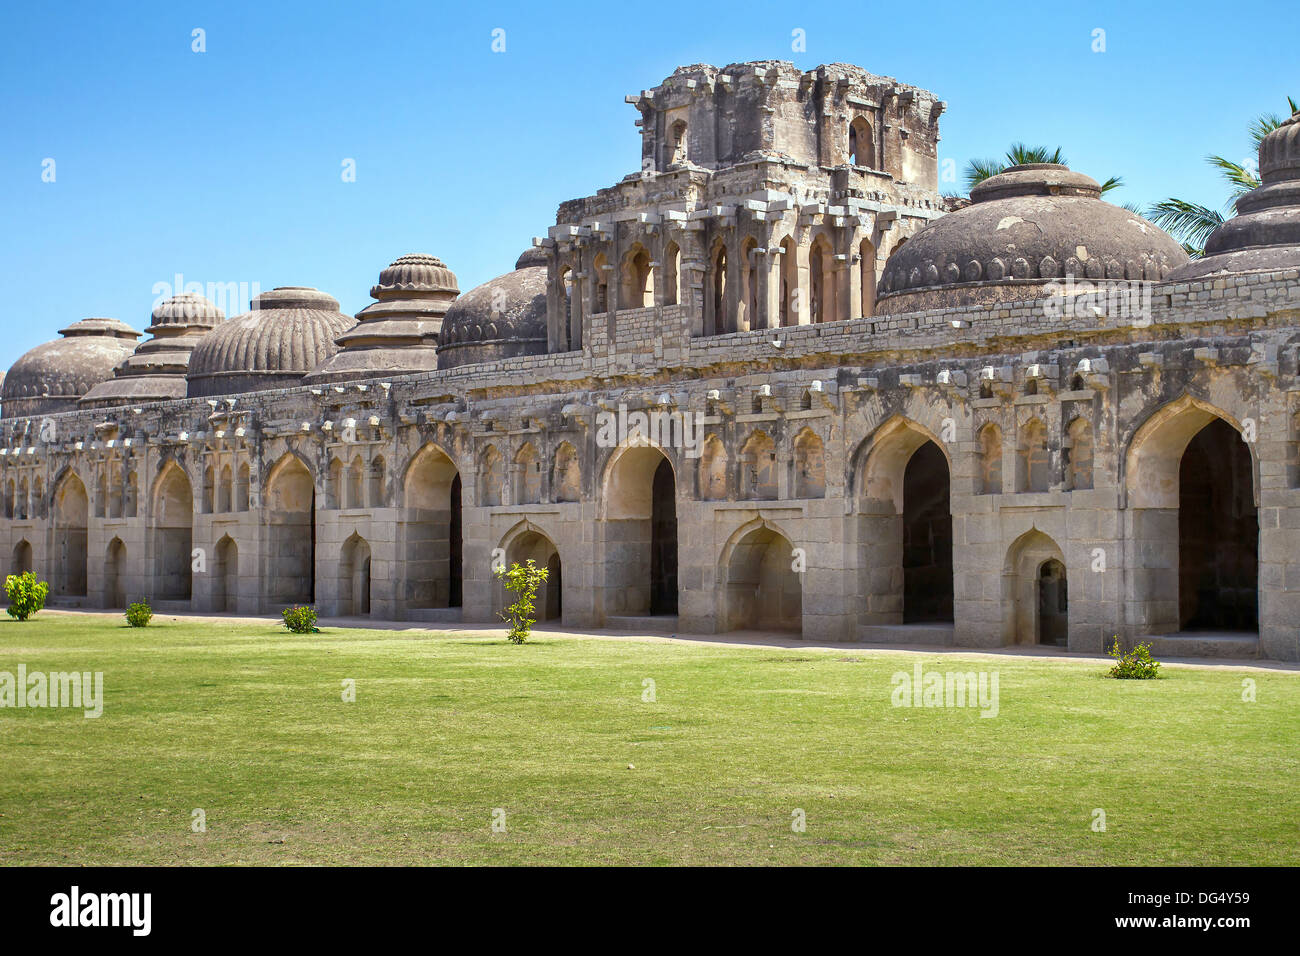 Ancient ruins of Elephant Stables. Hampi, India - Stock Image